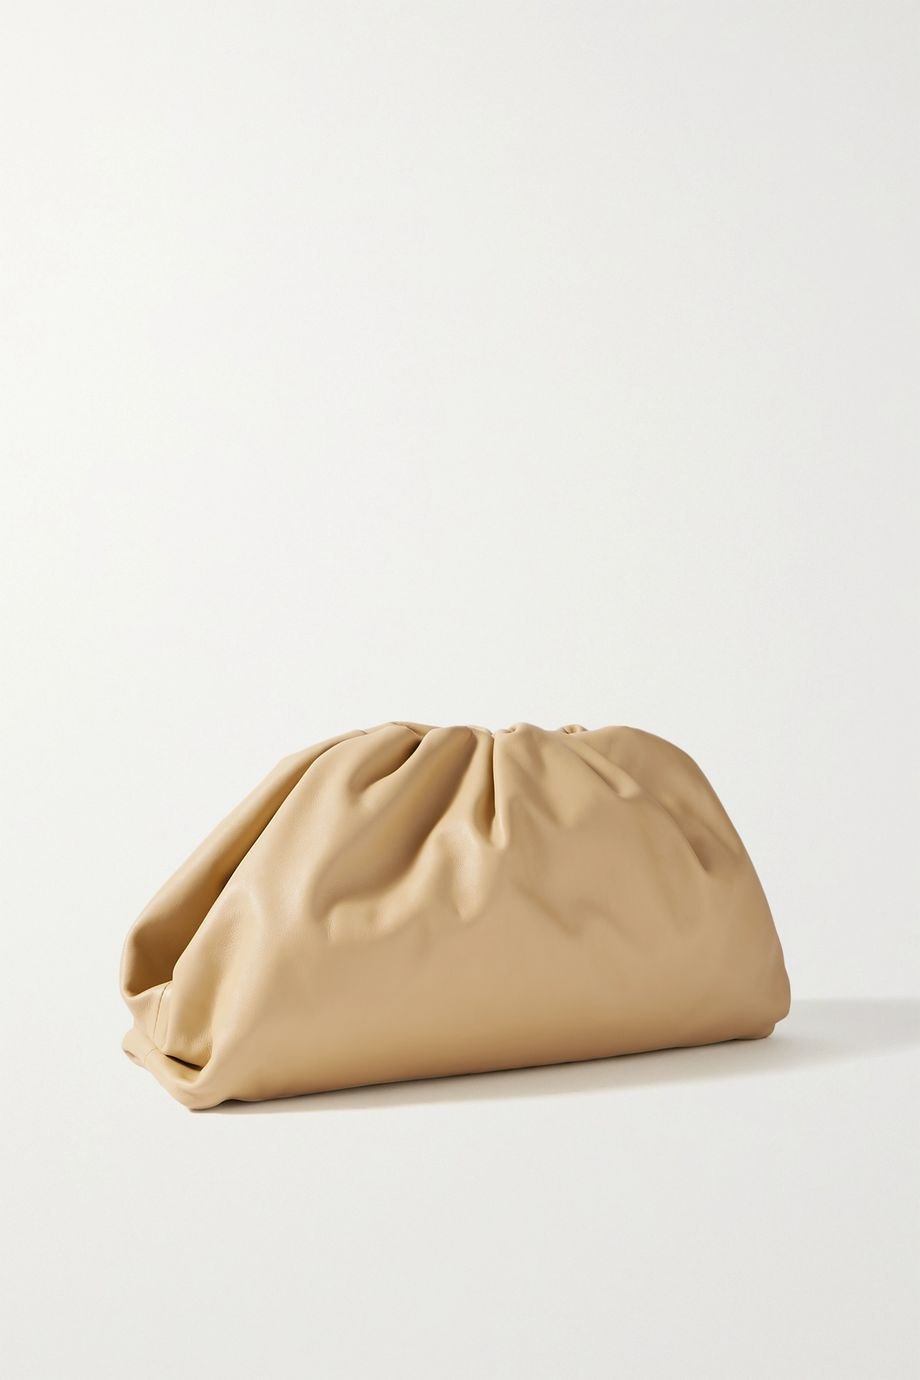 The Pouch large gathered leather clutch